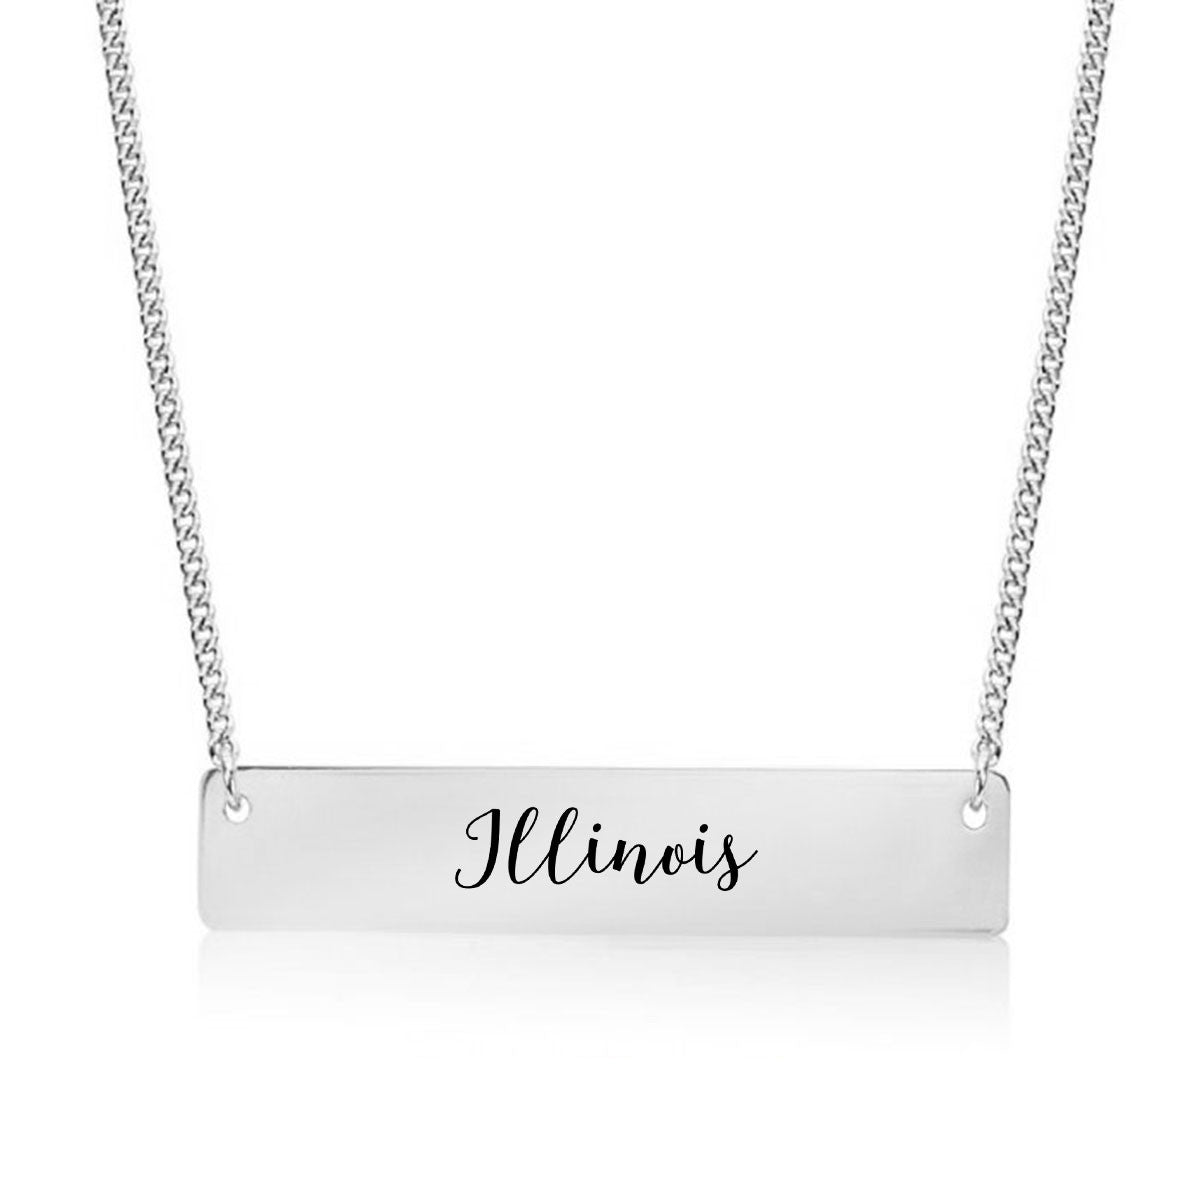 Illinois Gold / Silver Bar Necklace - pipercleo.com